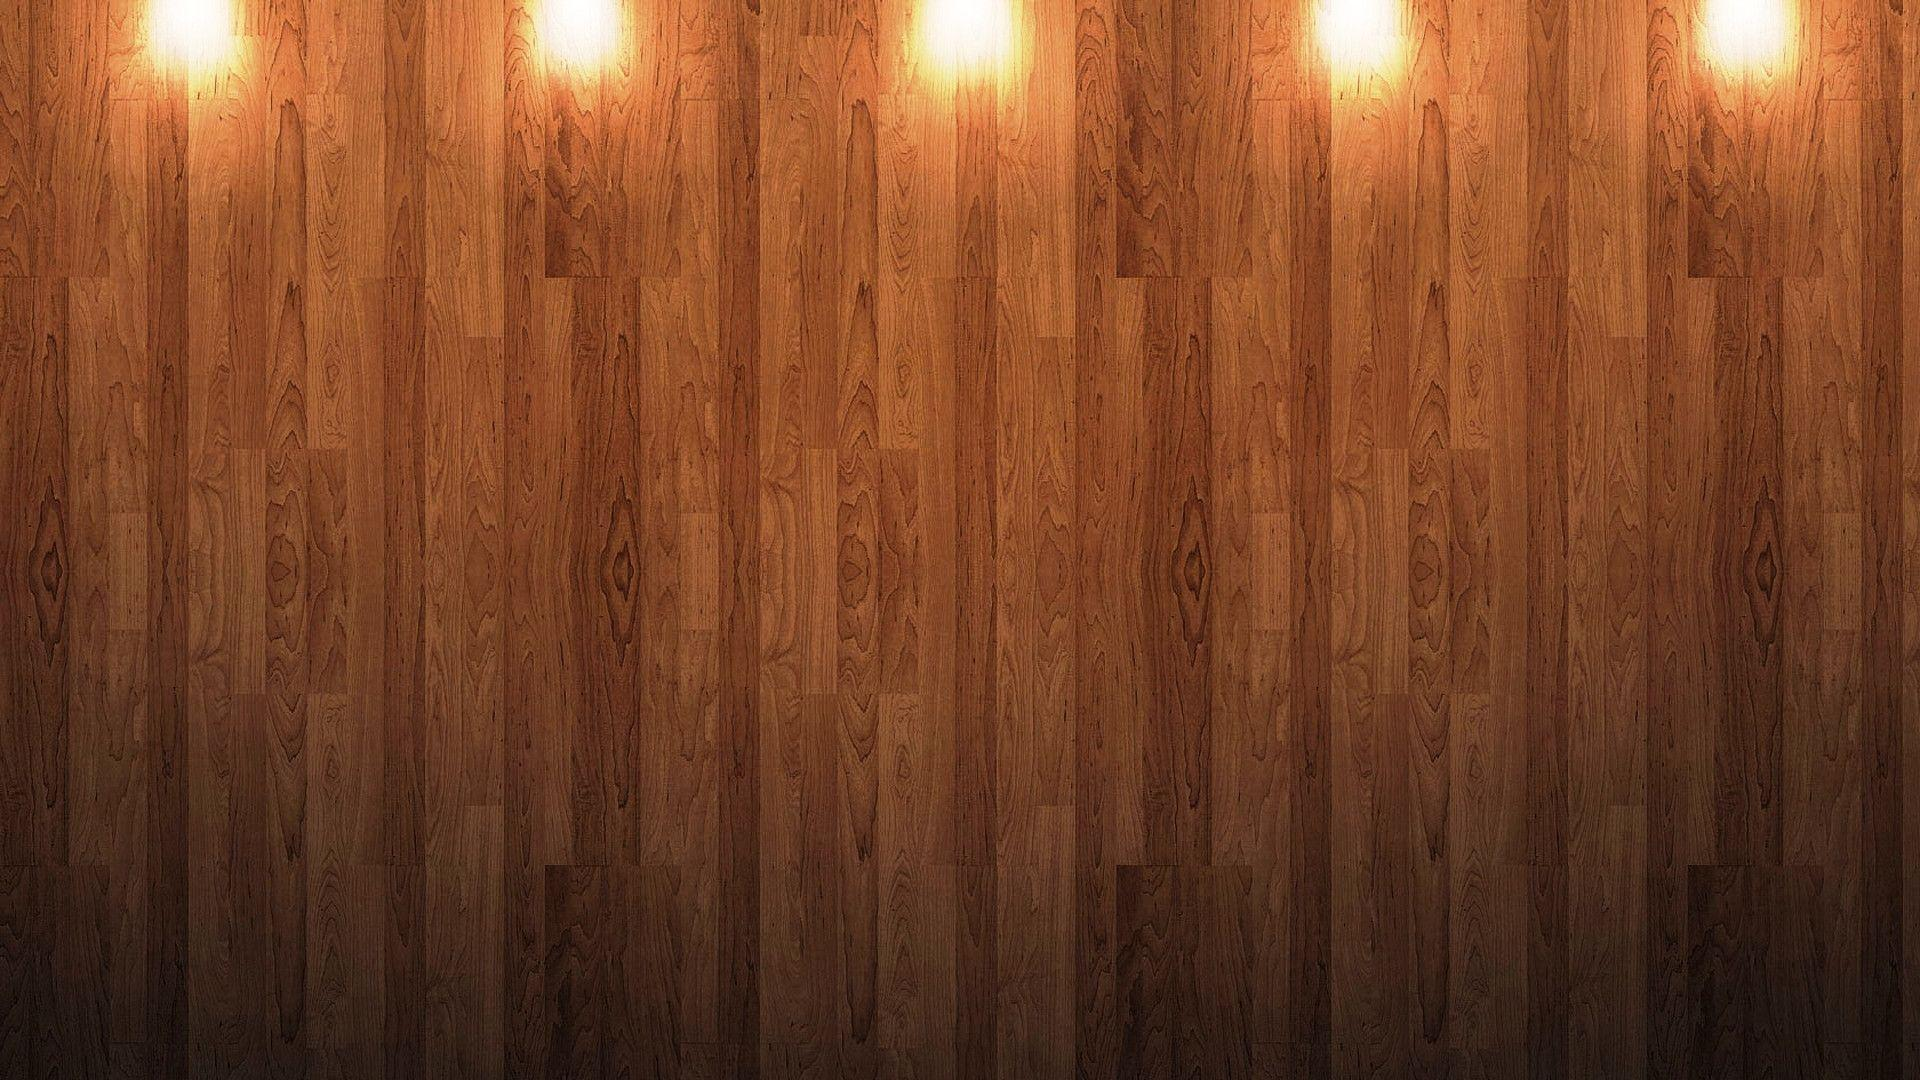 Hd Wood 2 Wallpapers and Background